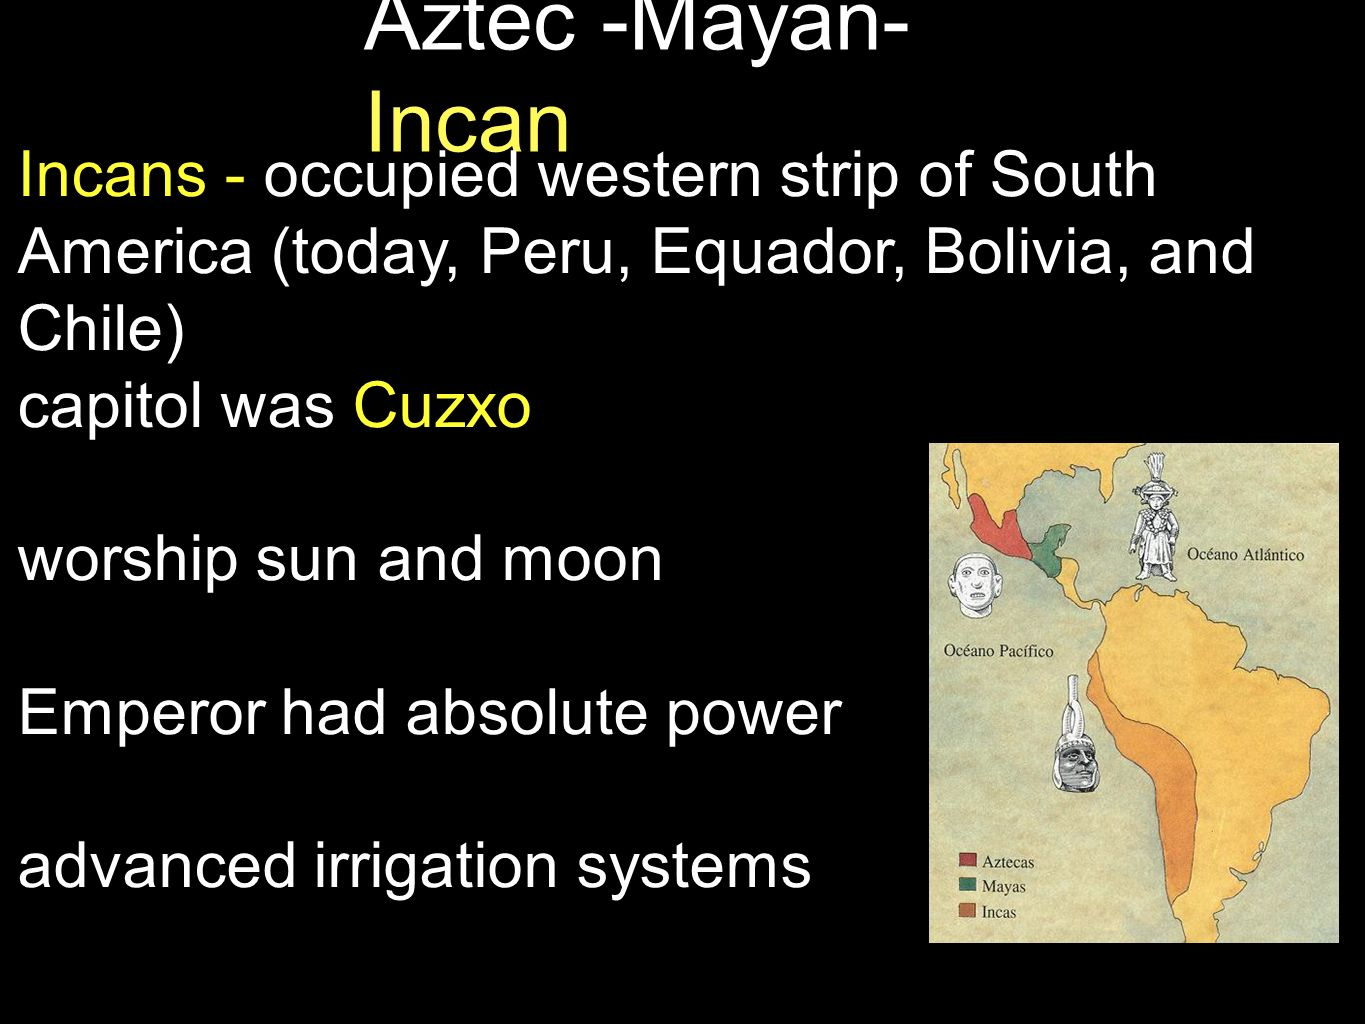 Aztec -Mayan- Incan Incans - occupied western strip of South America (today, Peru, Equador, Bolivia, and Chile) capitol was Cuzxo worship sun and moon